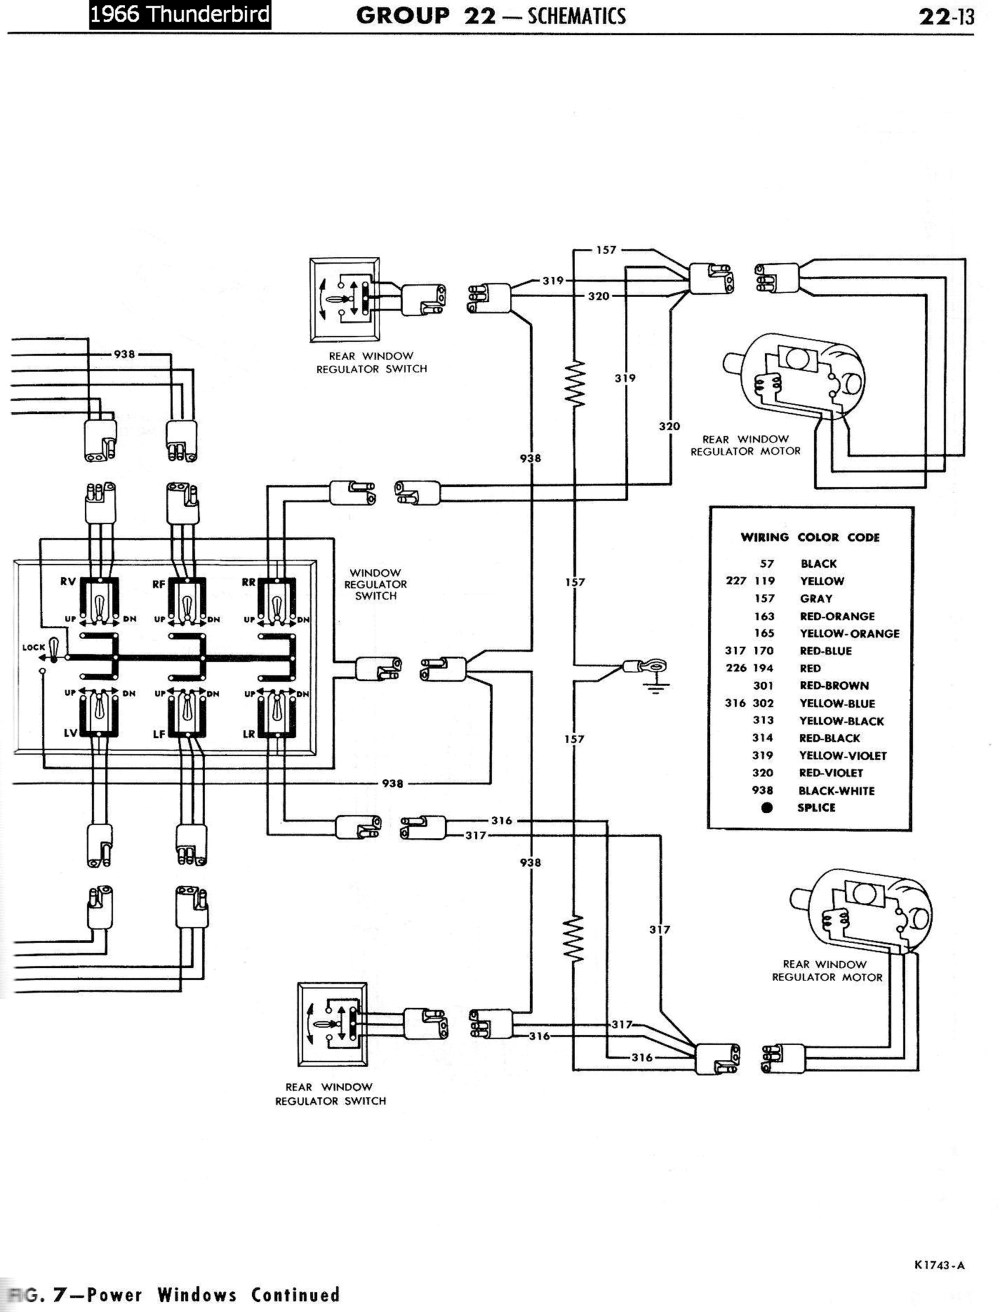 medium resolution of light switch wiring diagram 1957 thunderbird wiring diagram database 1957 ford thunderbird wiring diagram